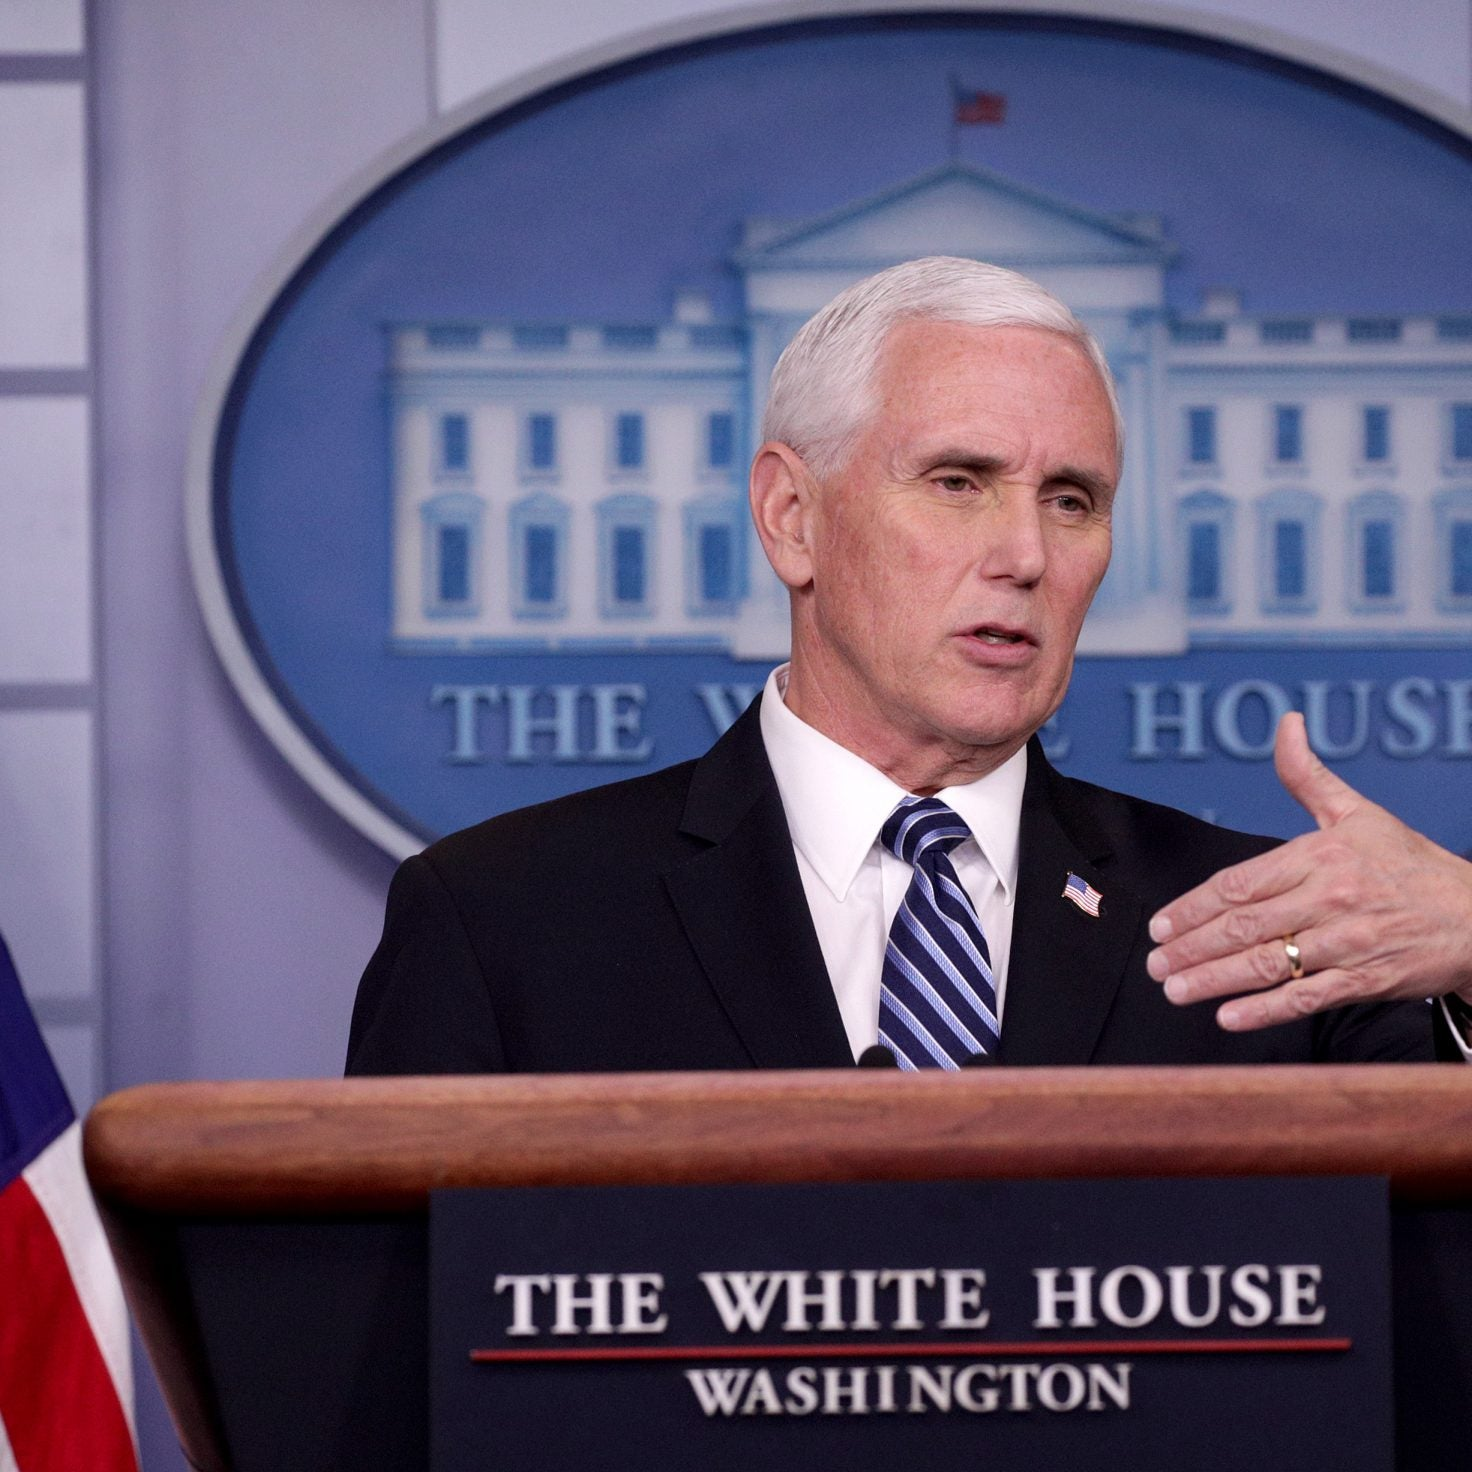 Mike Pence Reportedly Involved In Cover-Up Regarding Coronavirus Cases